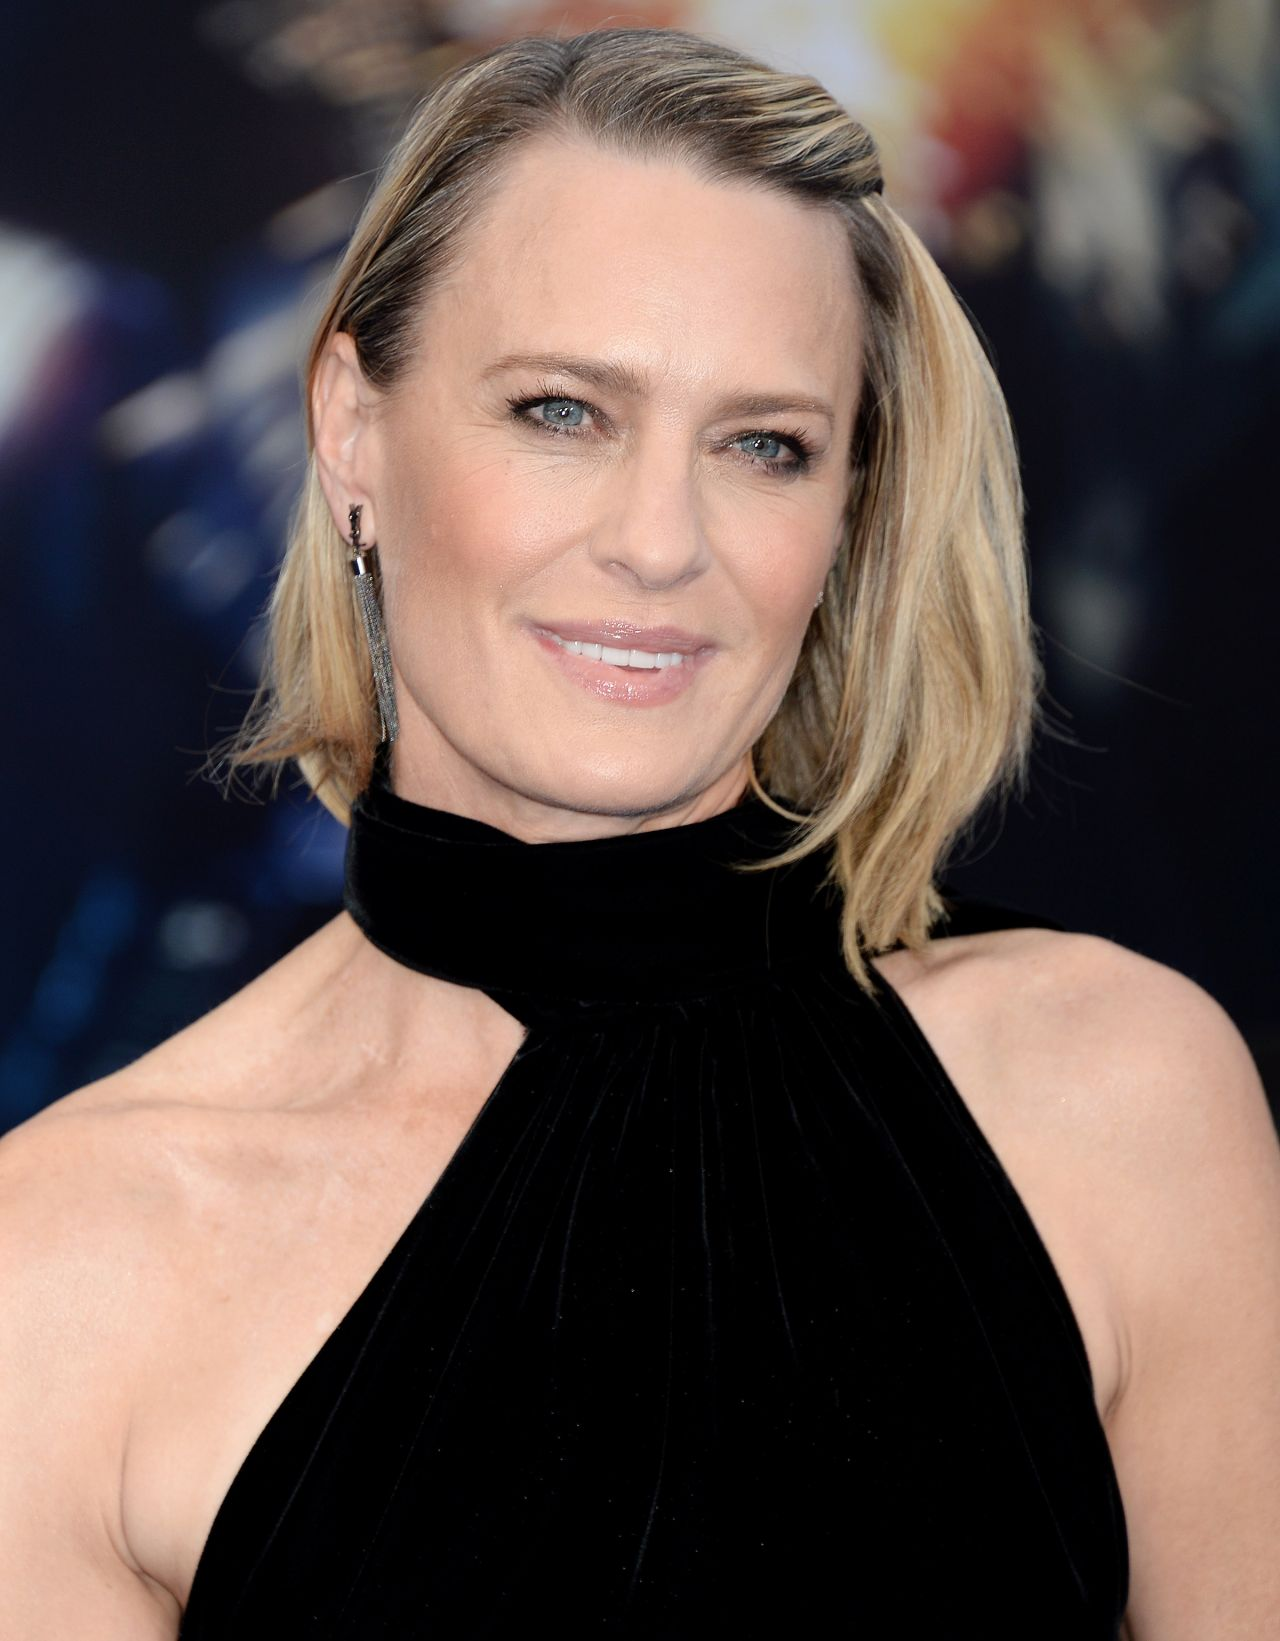 Robin Wright On Red Carpet Wonder Woman Movie Premiere